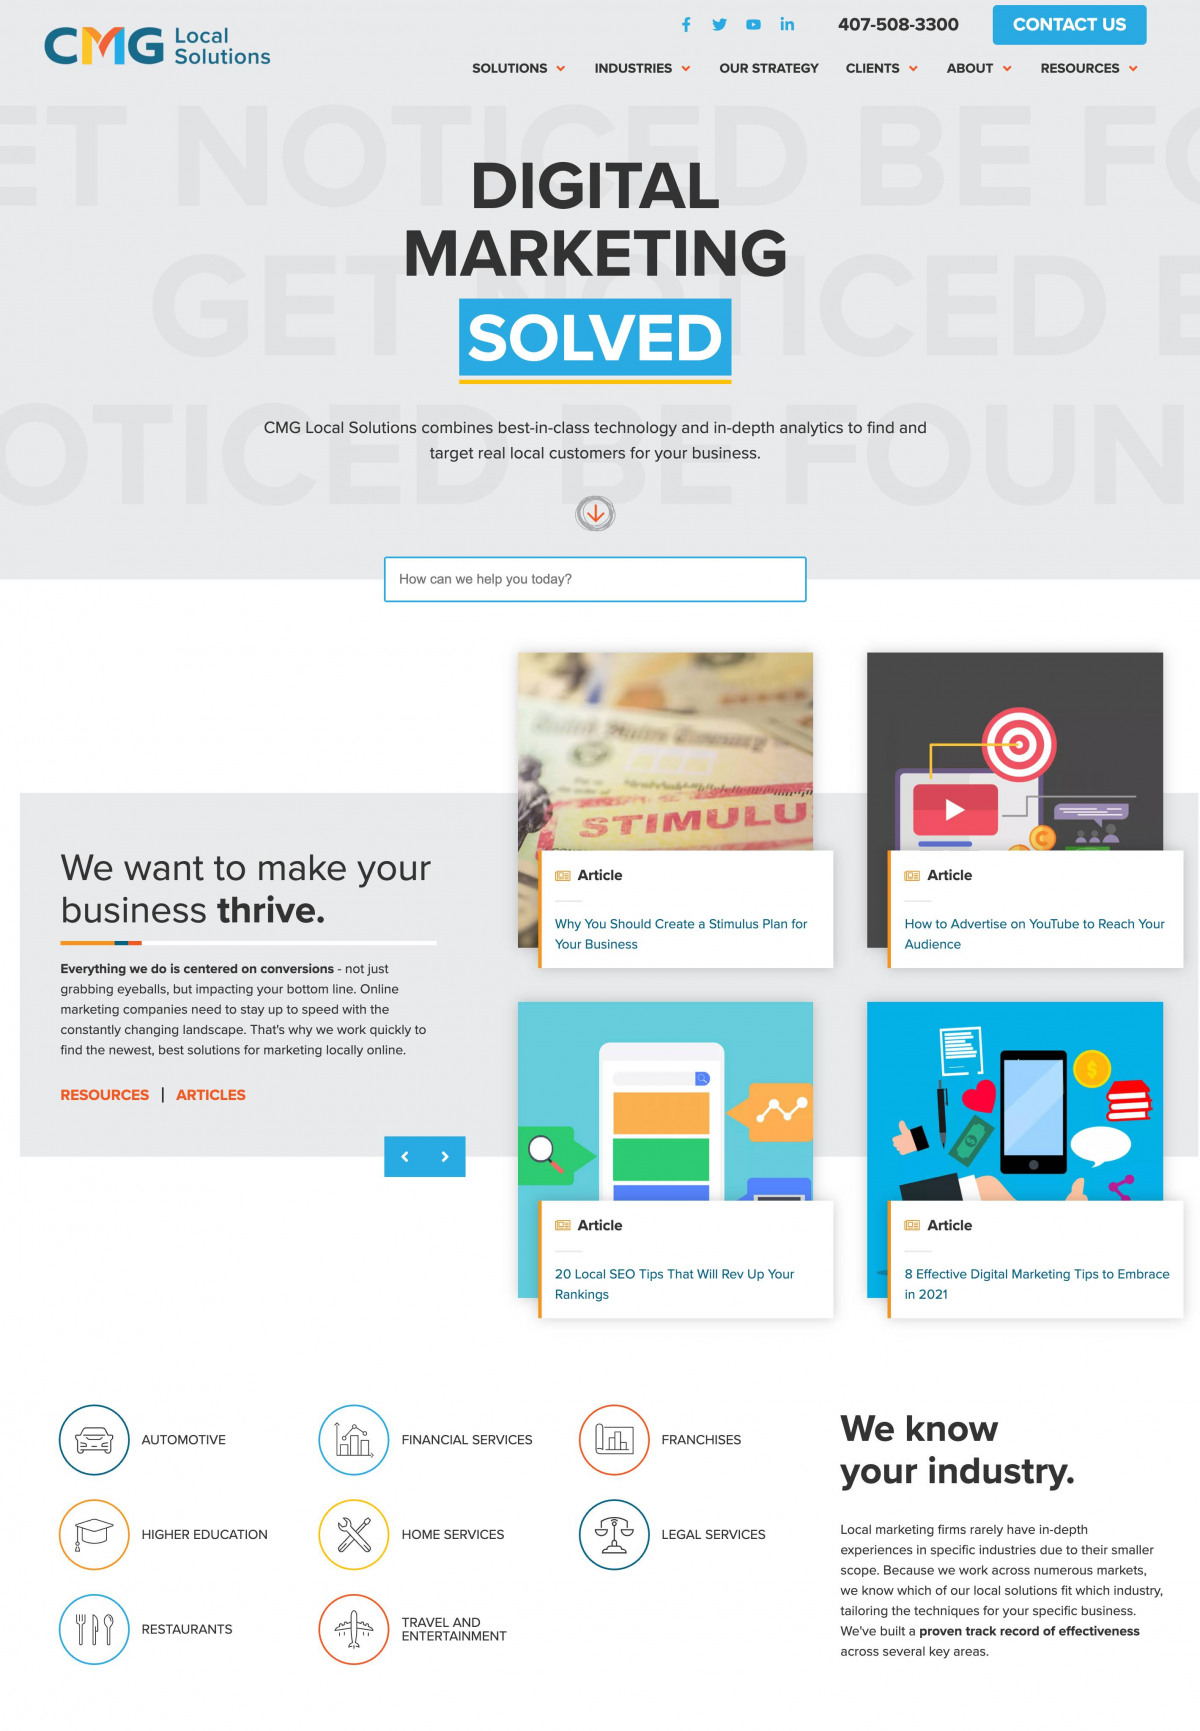 Image of website for CMG Local Solutions